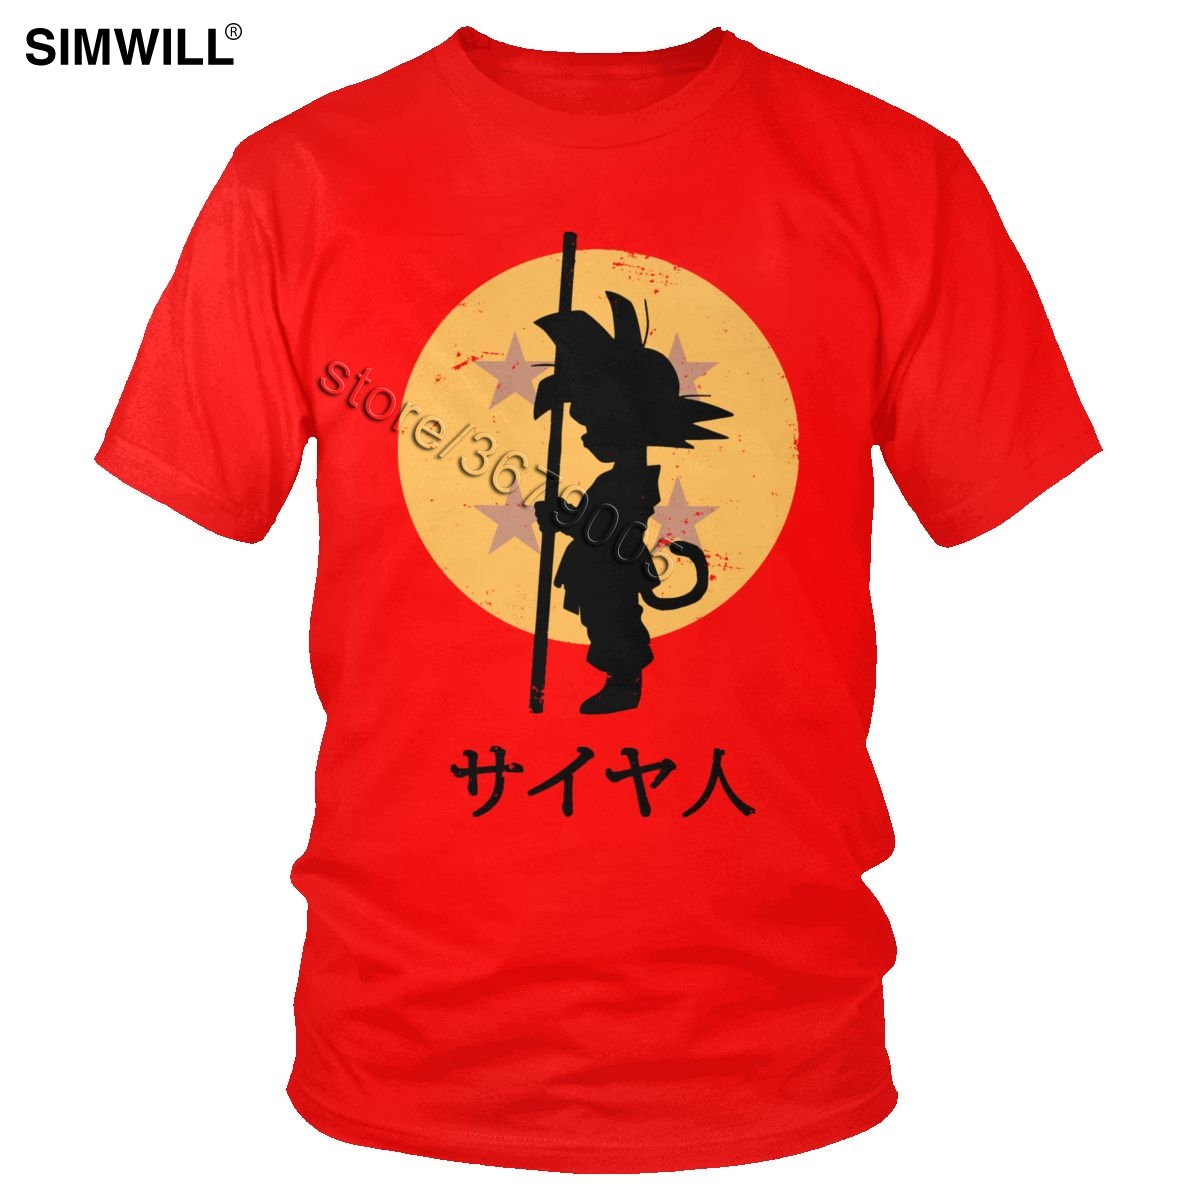 Trendy New Tshirt Men Cotton <font><b>Dragon</b></font> <font><b>Ball</b></font> Z Tee <font><b>Shirt</b></font> Short Sleeves Round Neck Goku <font><b>T</b></font> <font><b>shirt</b></font> Leisure <font><b>T</b></font>-<font><b>Shirts</b></font> 4XL <font><b>5XL</b></font> 6XL Clothes image